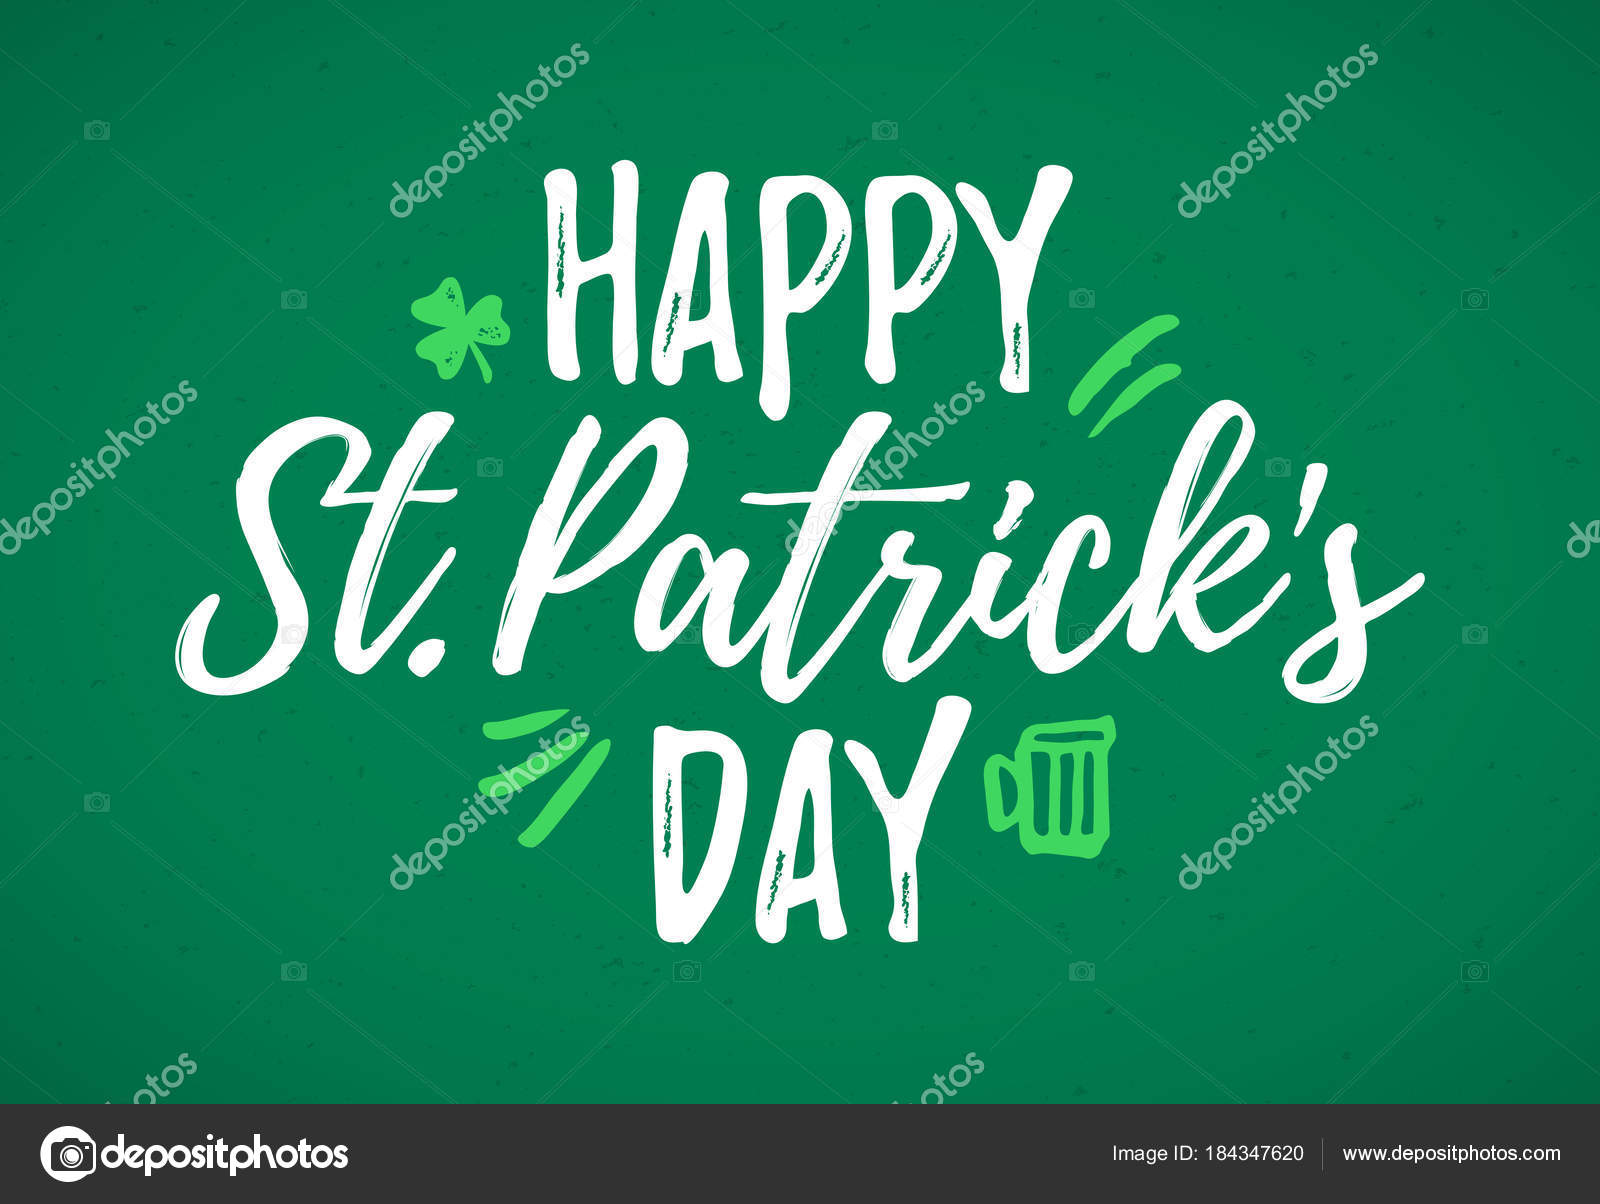 St patricks day greeting card stock vector alhovik 184347620 happy st patricks day greeting card 17 march feast of st patrick handdrawn dry brush style lettering vector by alhovik kristyandbryce Choice Image